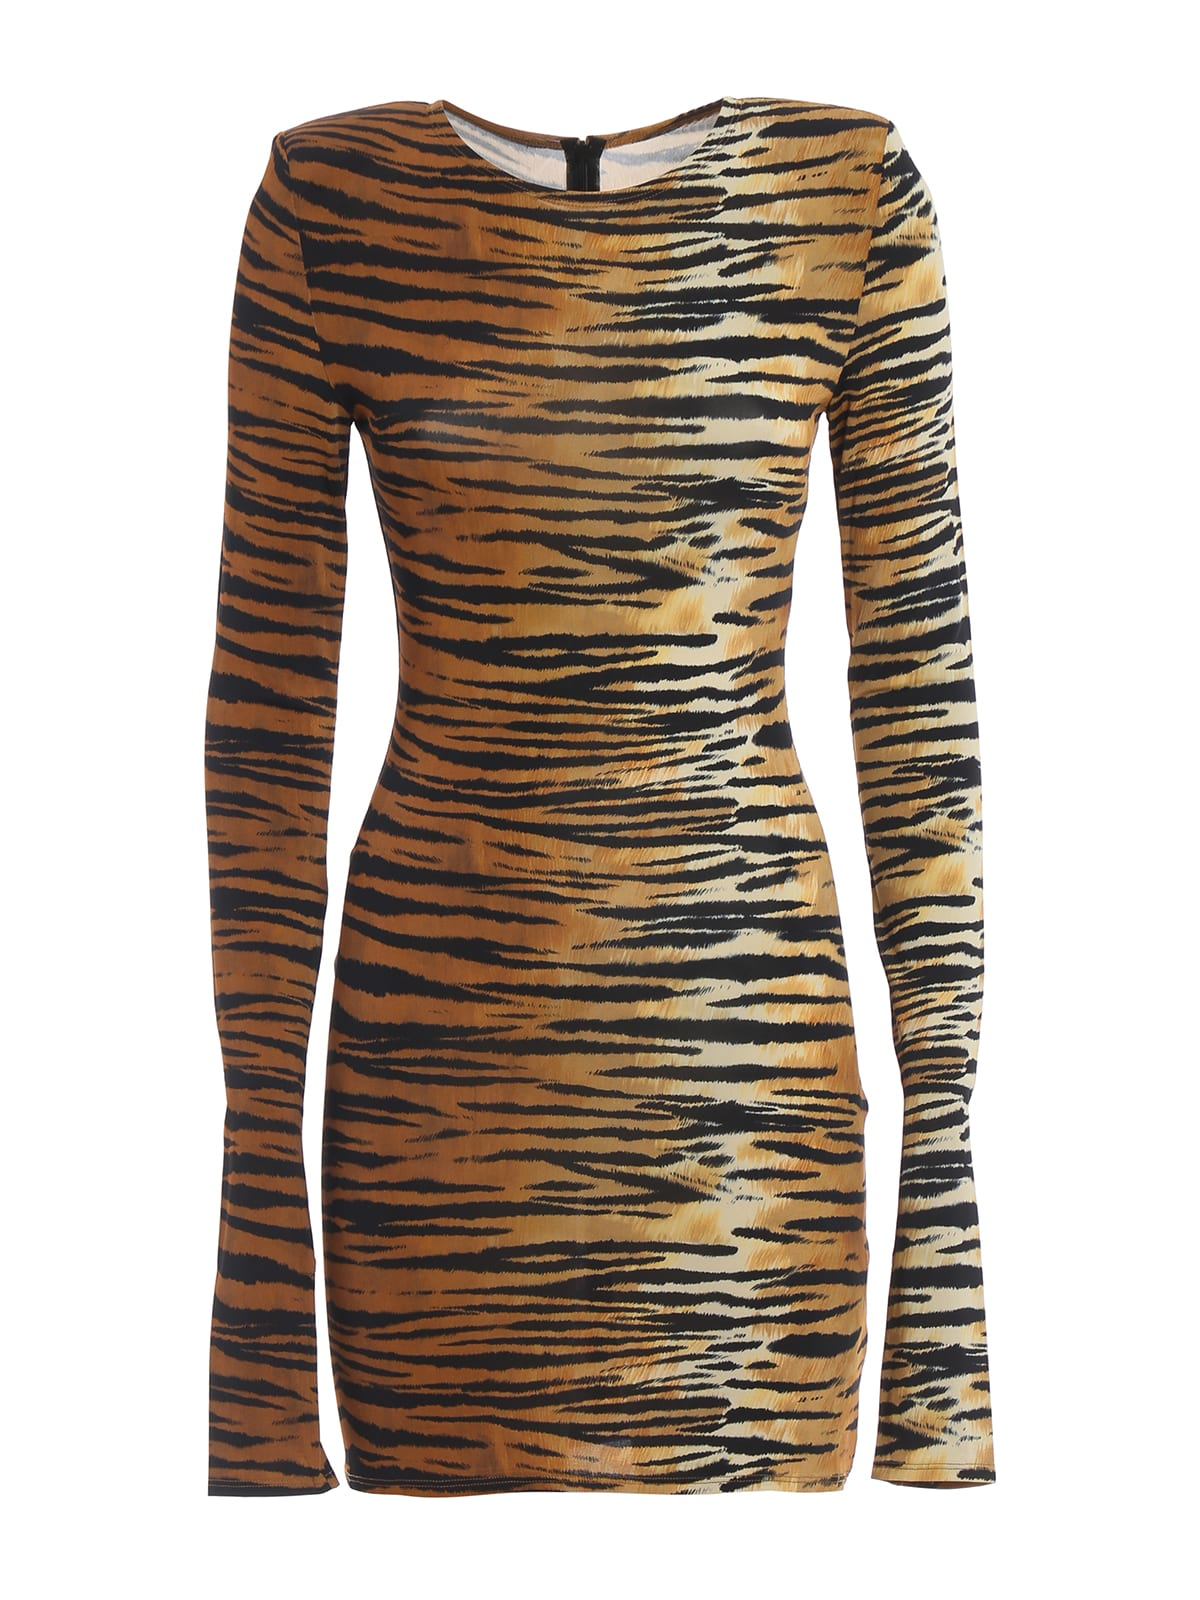 Alexandre Vauthier Animal Print Viscose Blend Dress